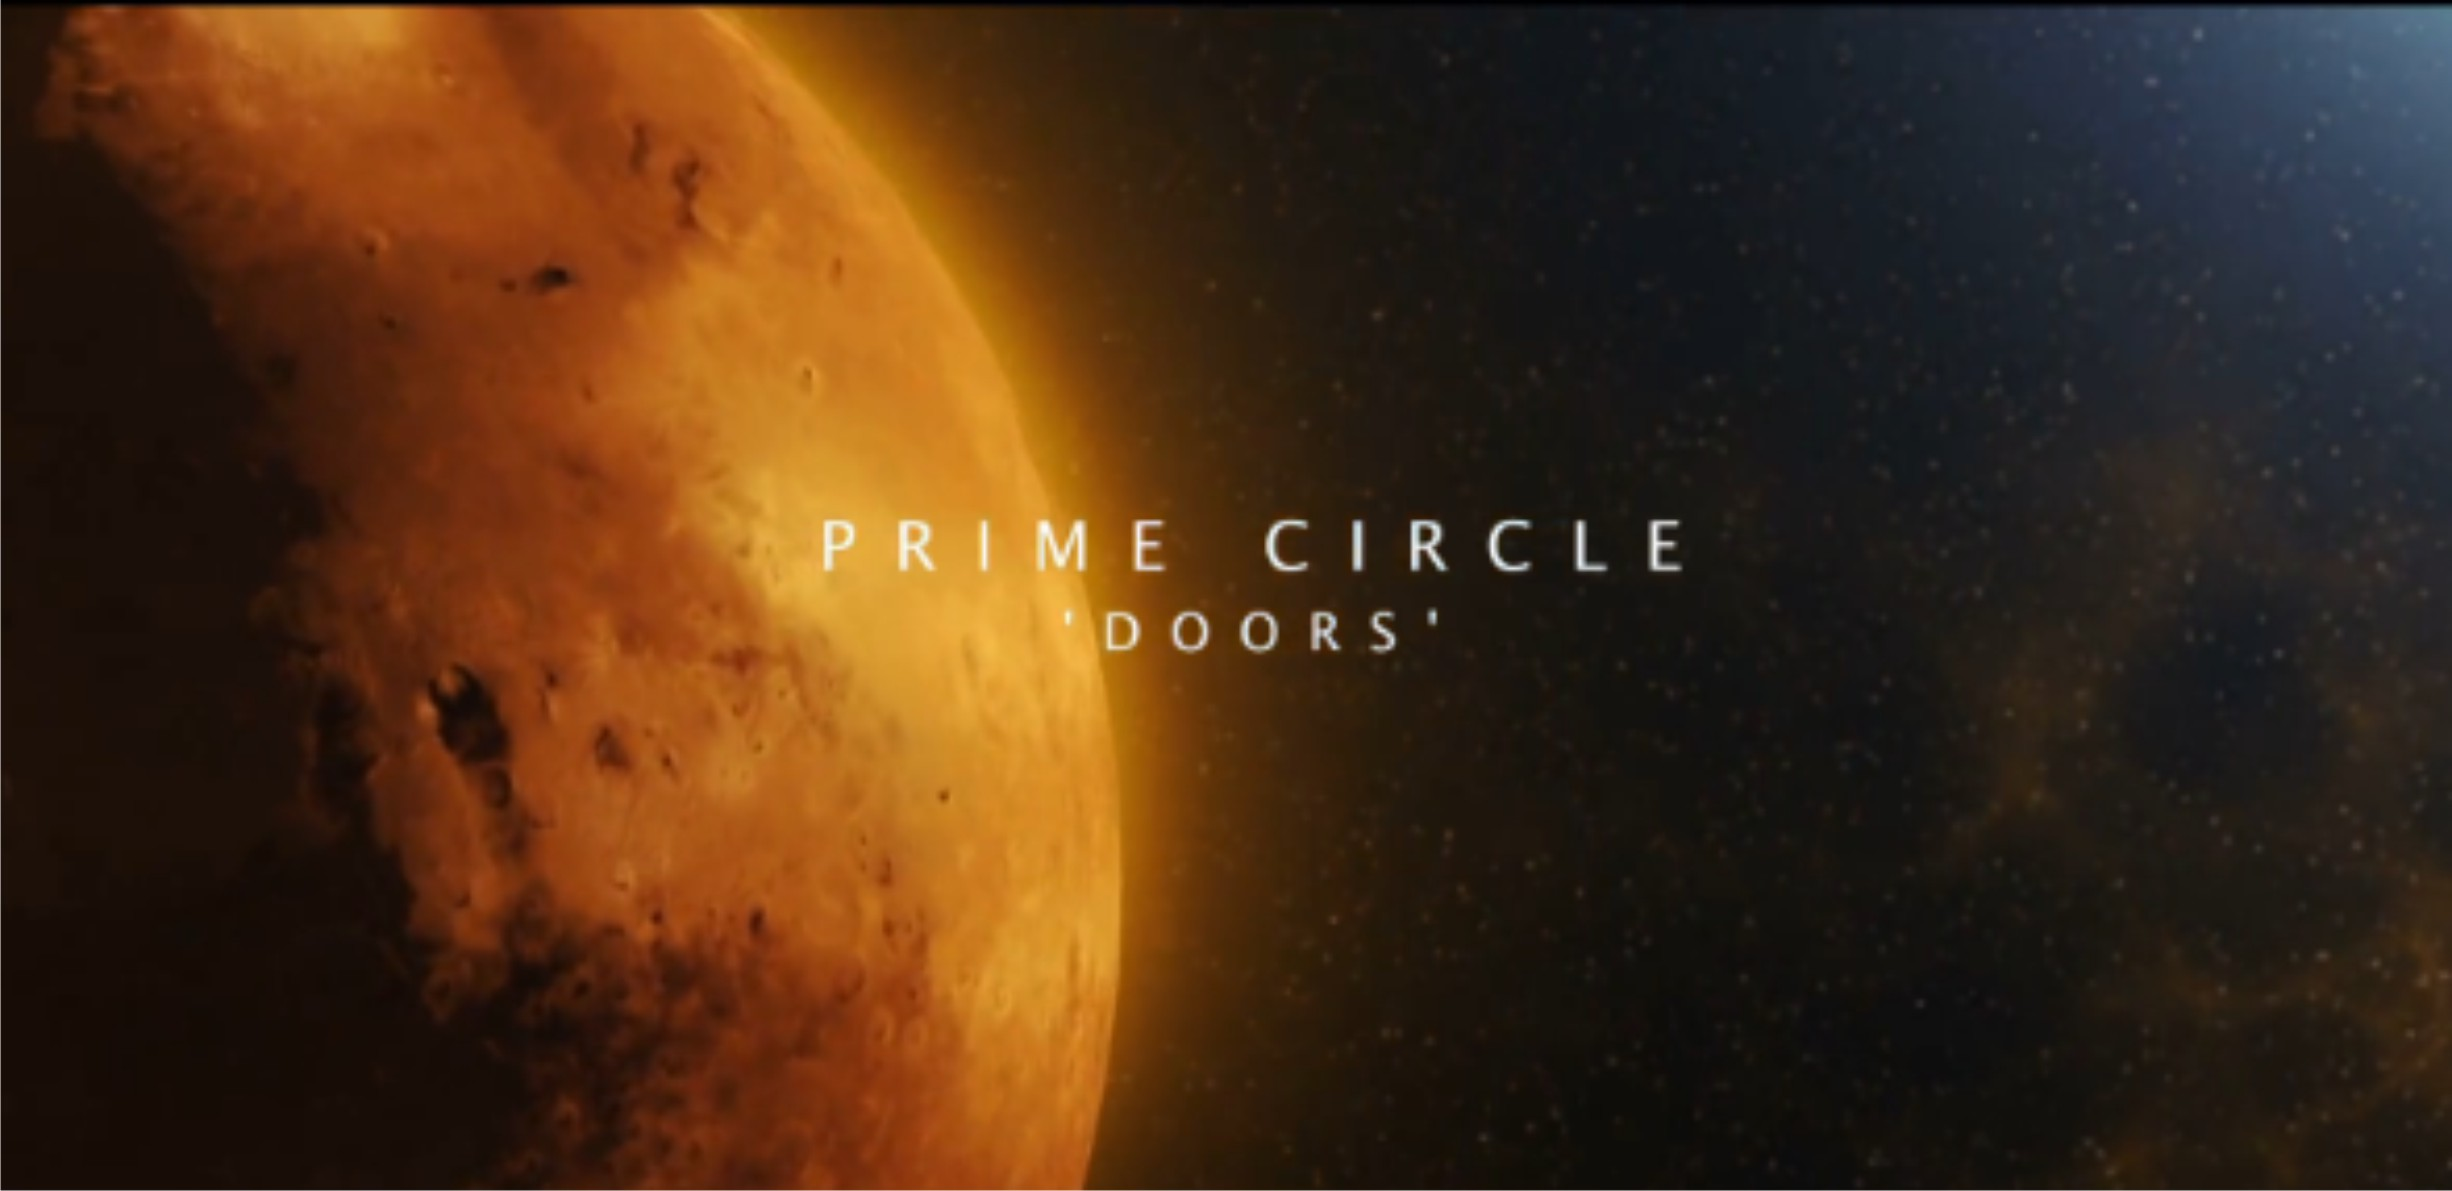 Prime Circle release their Doors music video to the South African music scene